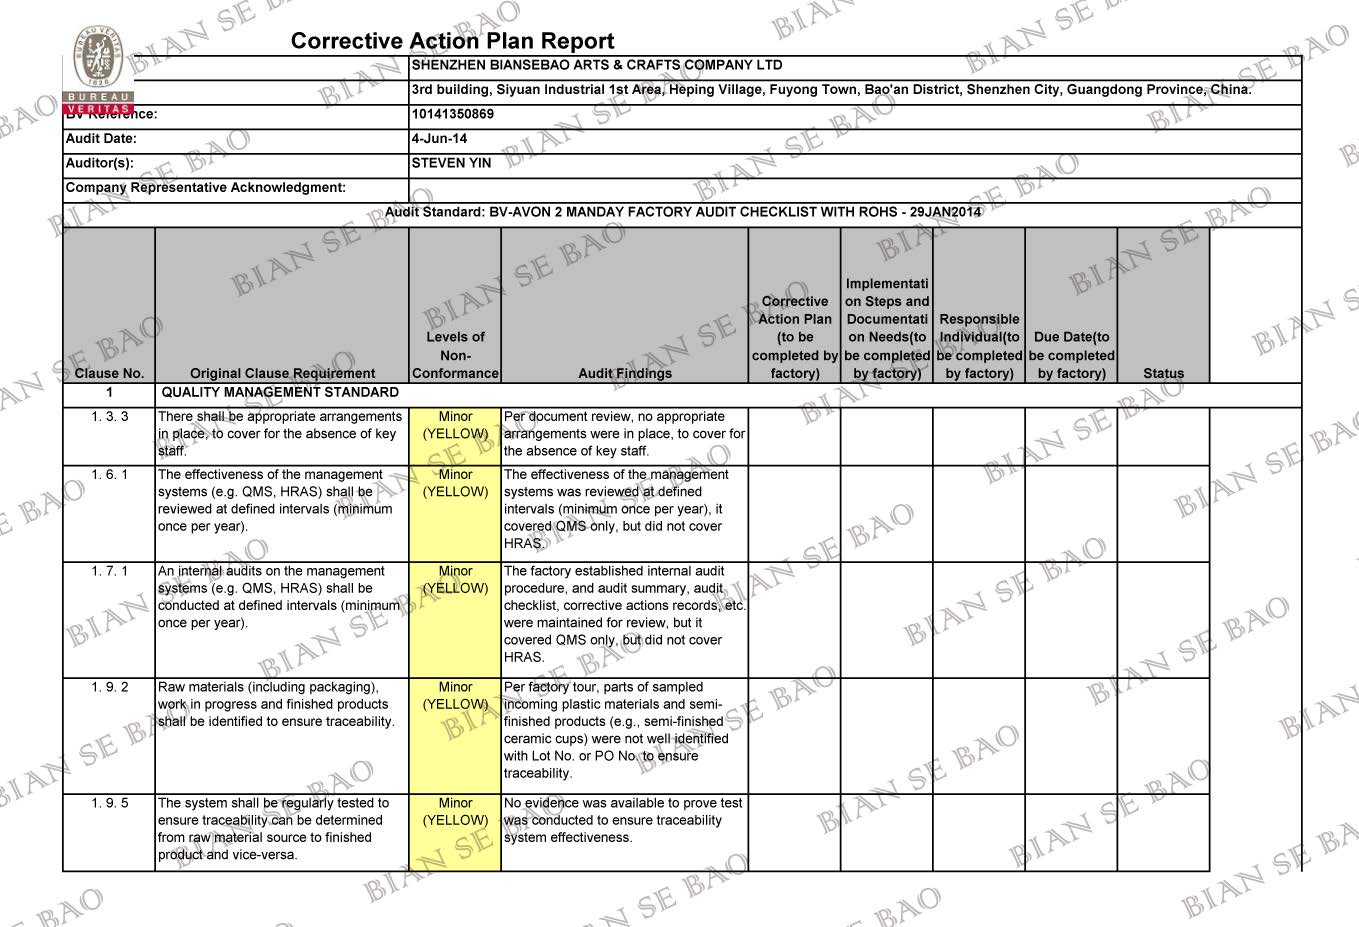 Corrective Action Plan Report